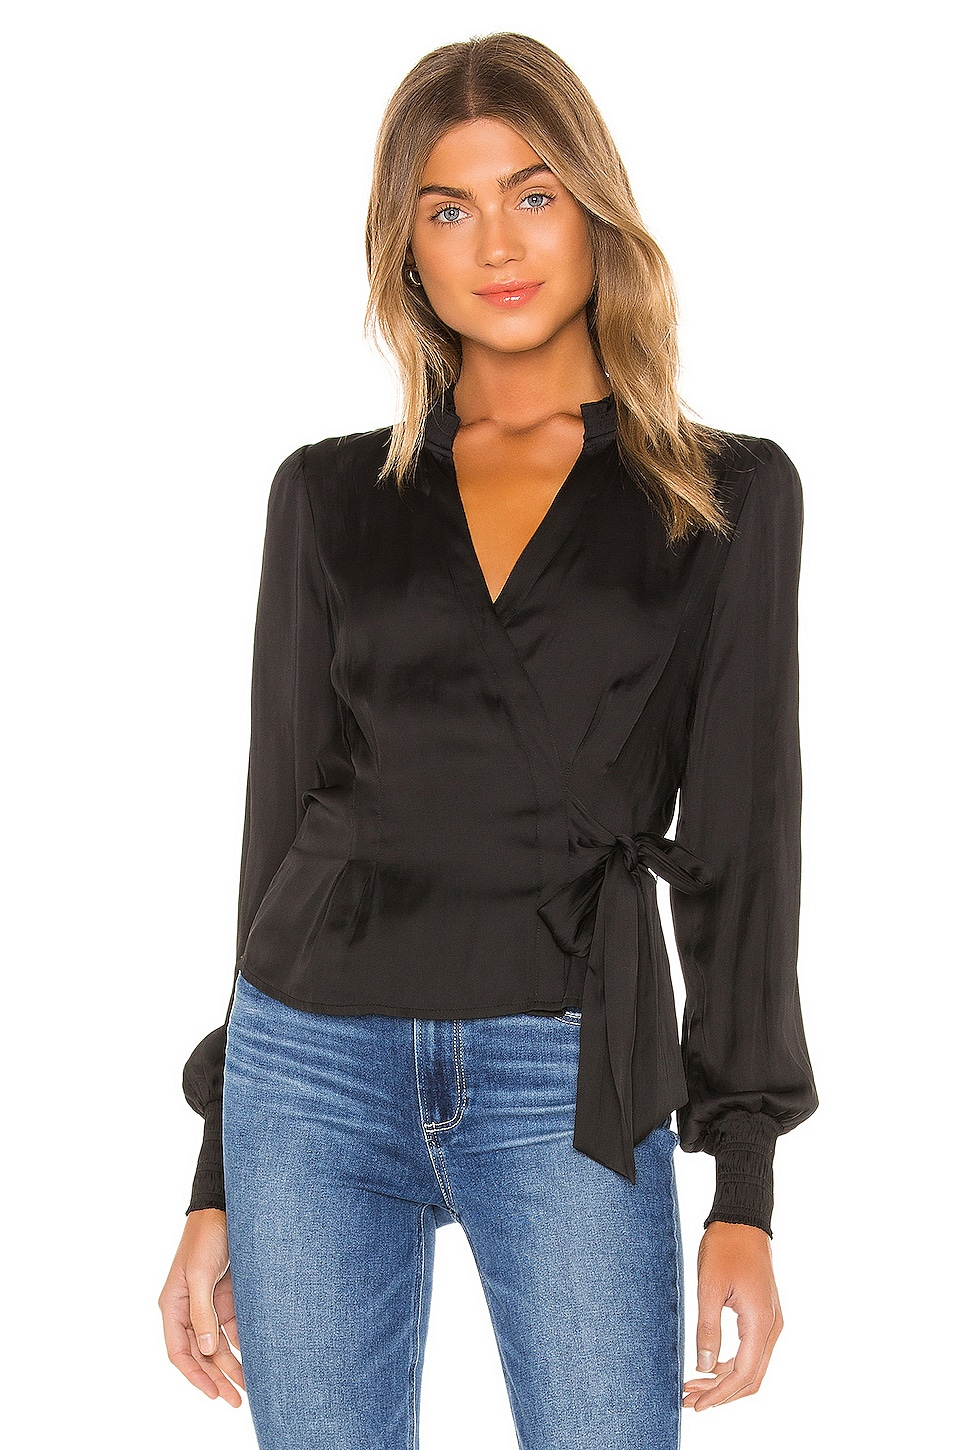 PAIGE Selby Top in Black